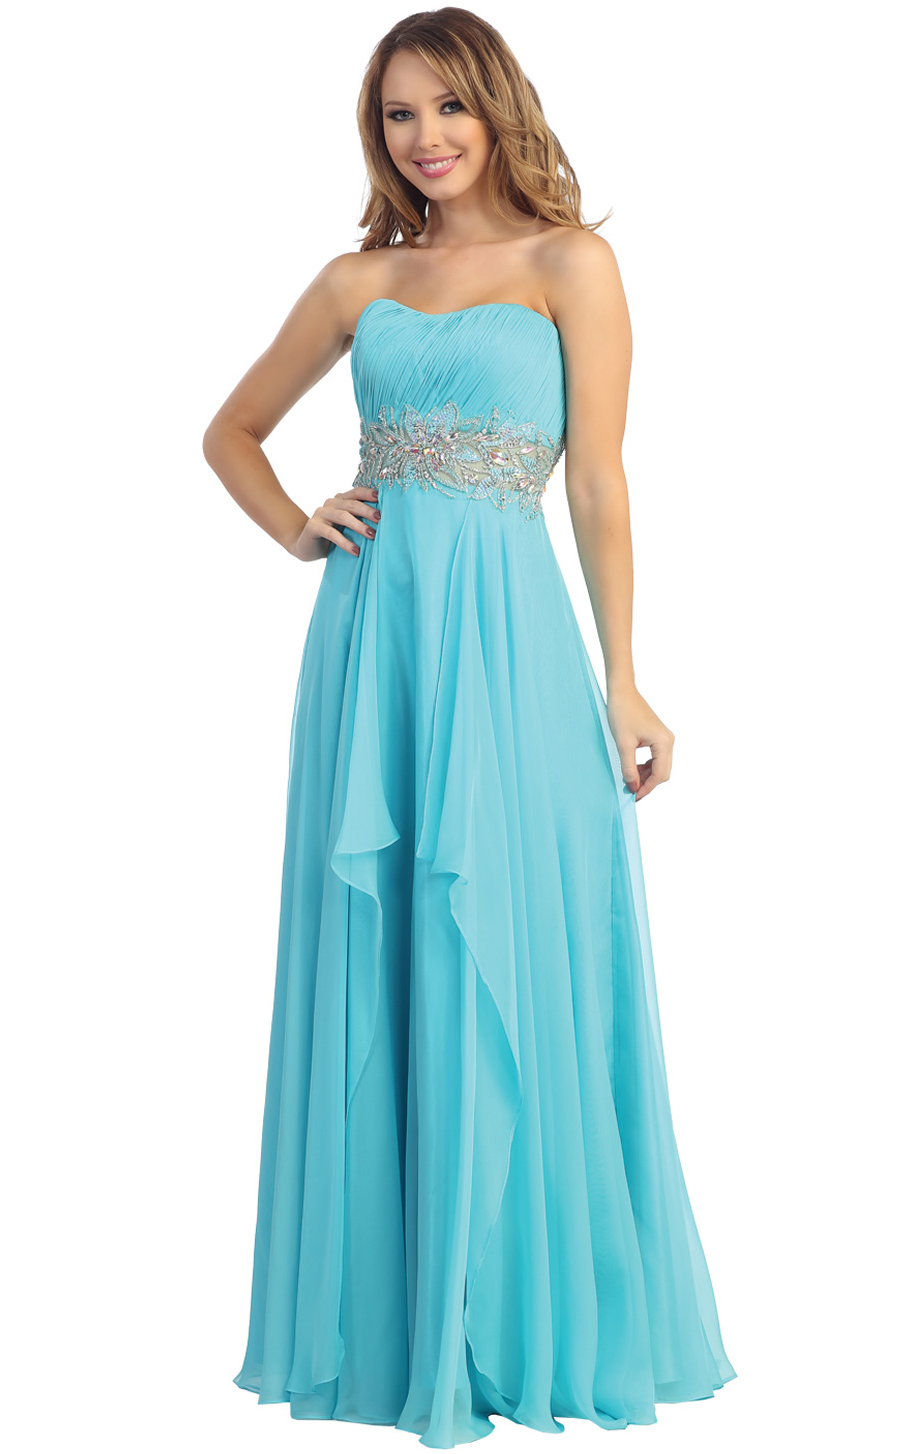 Chiffon Strapless Sweetheart EmpireChiffon Prom Dress